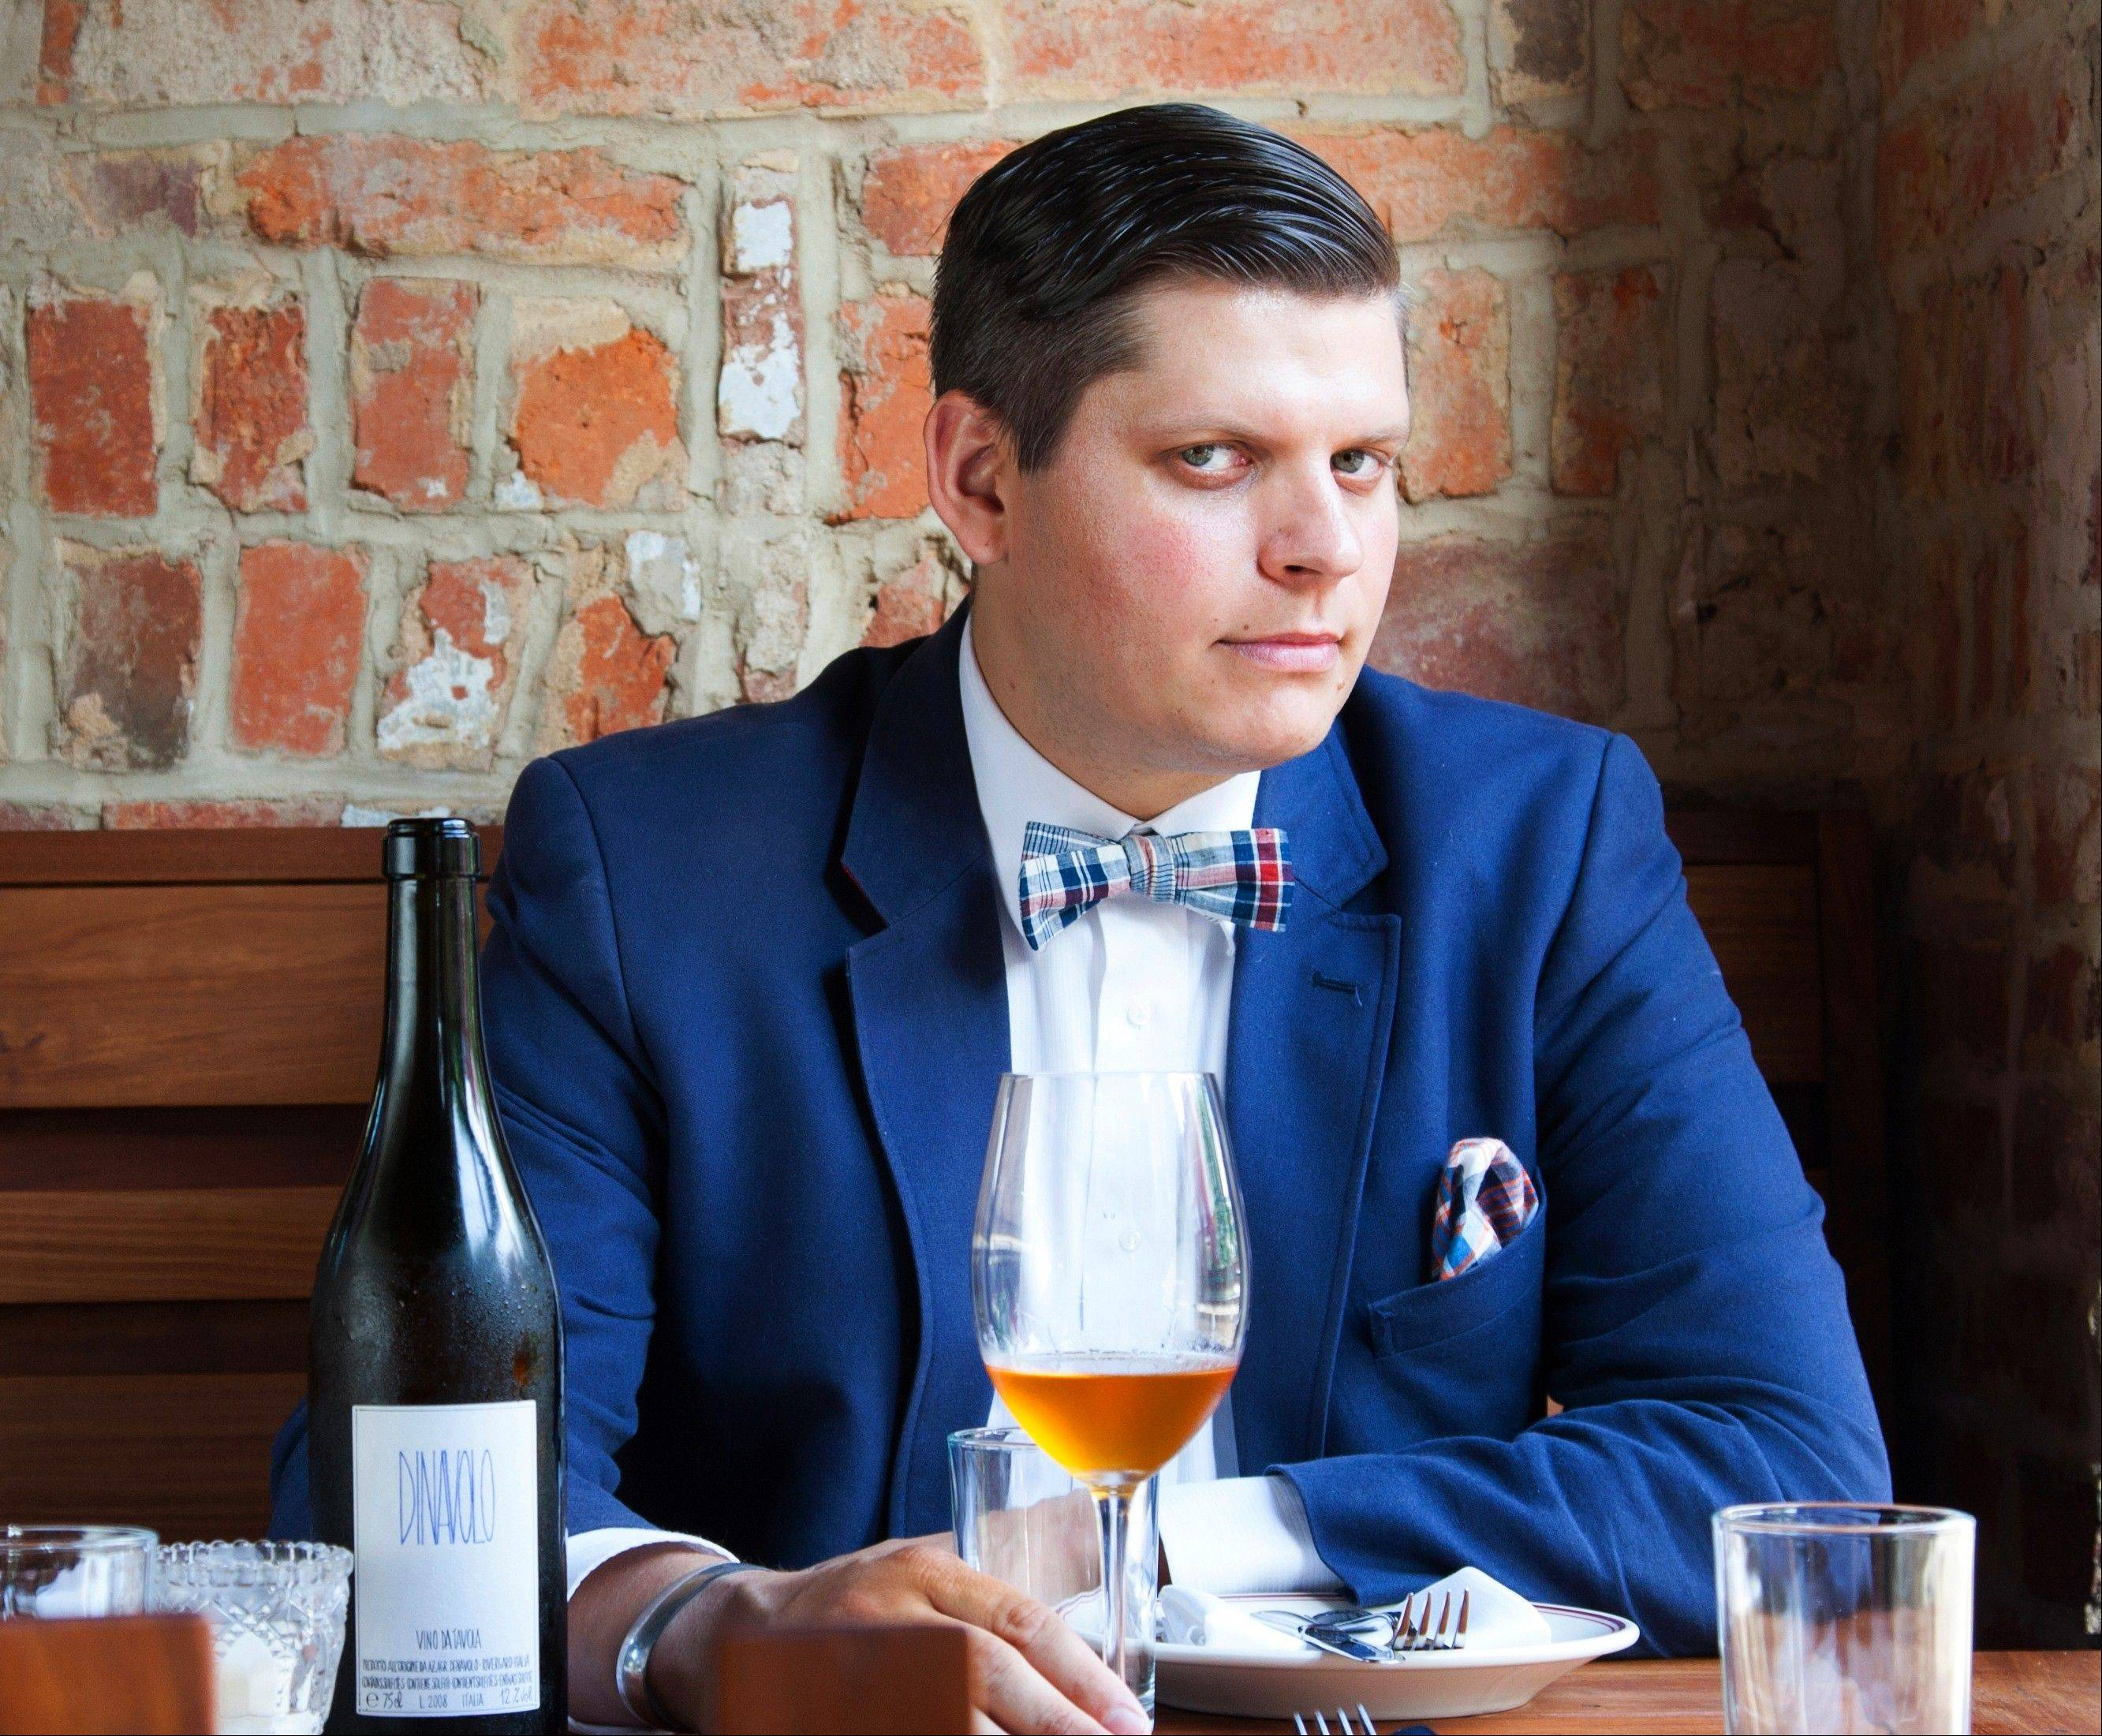 Co-owner and wine manager Sebastian Zutant offers orange wine at the Red Hen in Washington, D.C. �These wines were built for food,� he says.